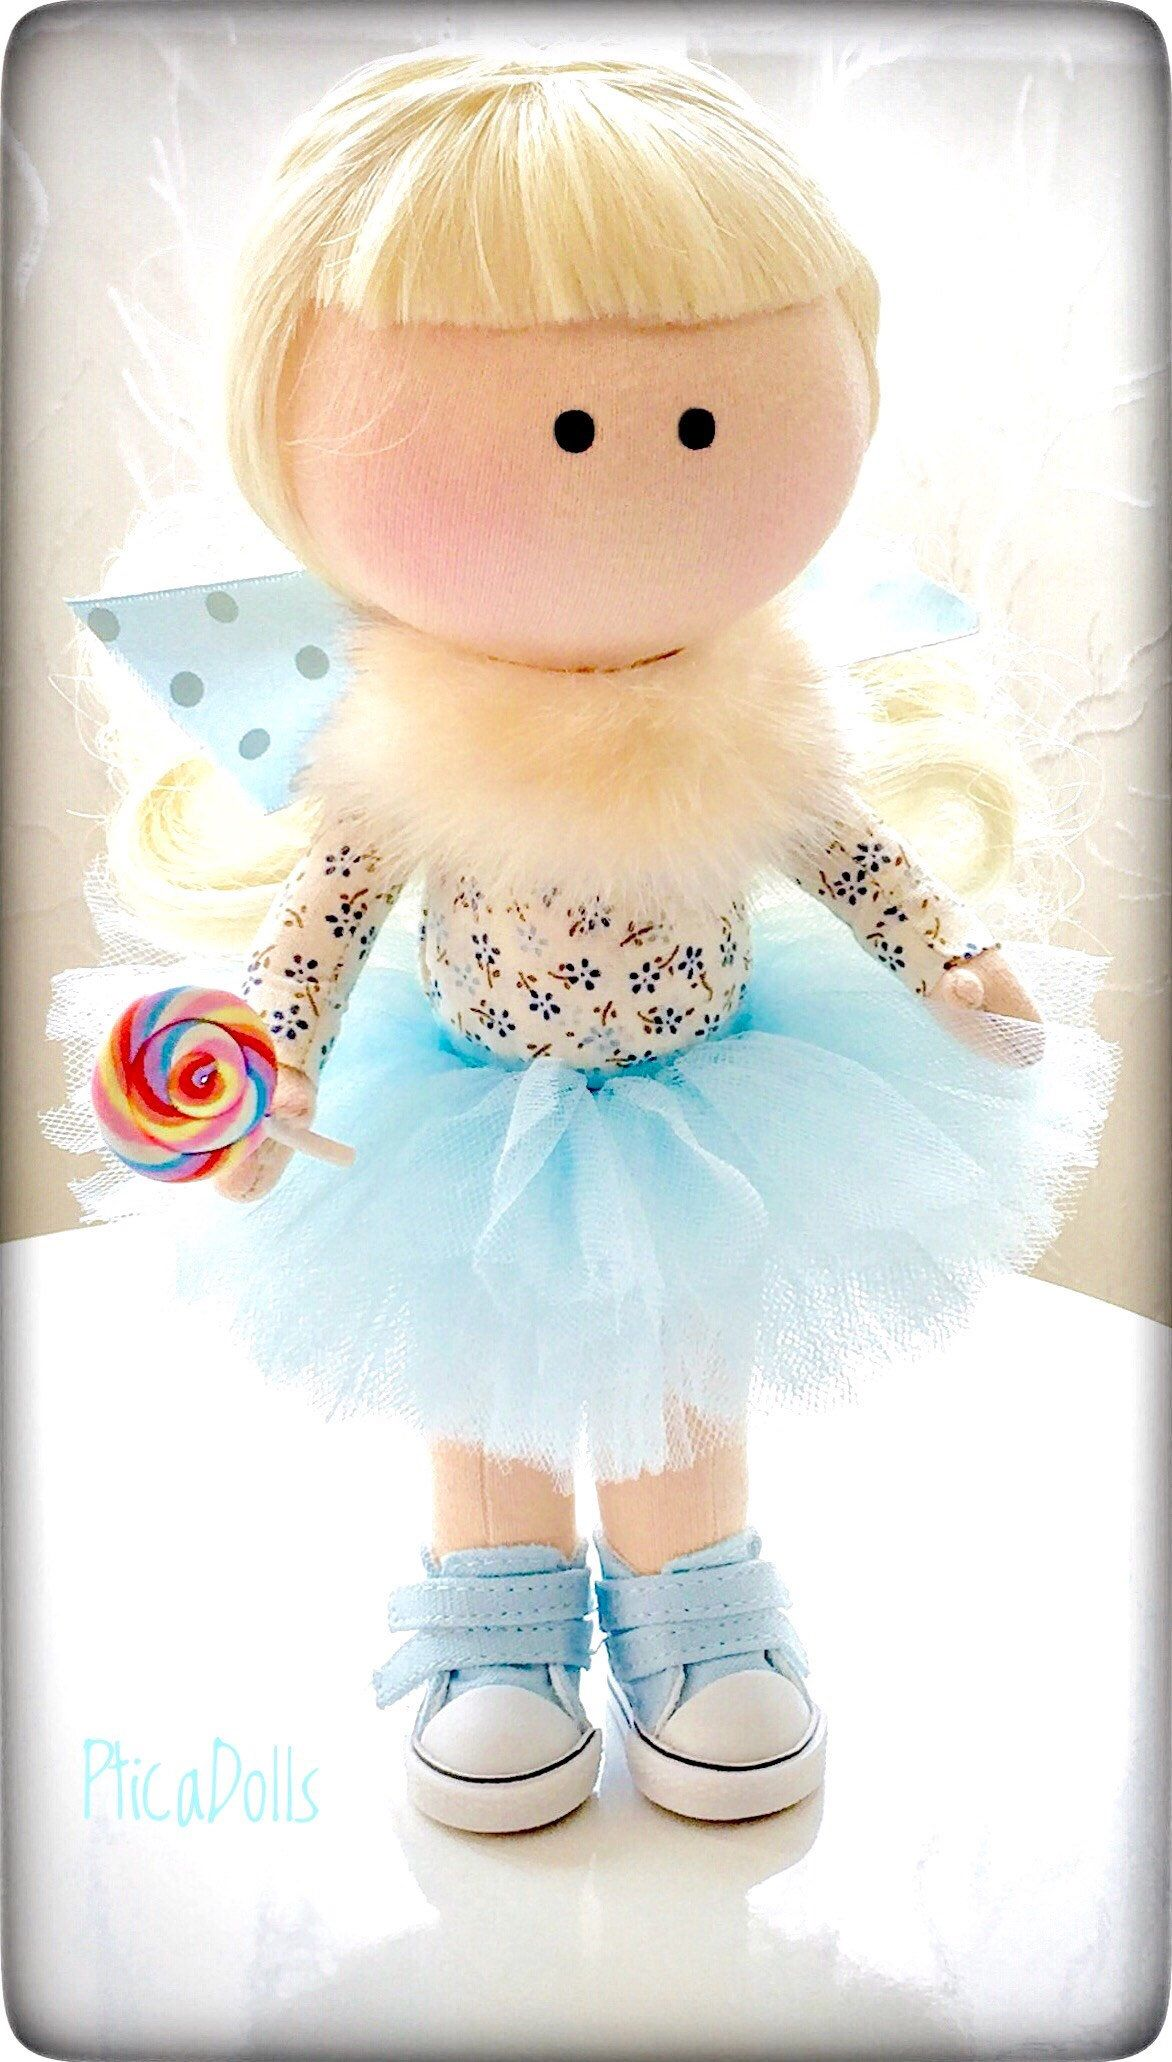 Spring sale Tilda home decor doll Blonde curly haired handmade rag doll Fairy princess sky blue doll with lollipop kawaii chibi totoro toy #dollcare